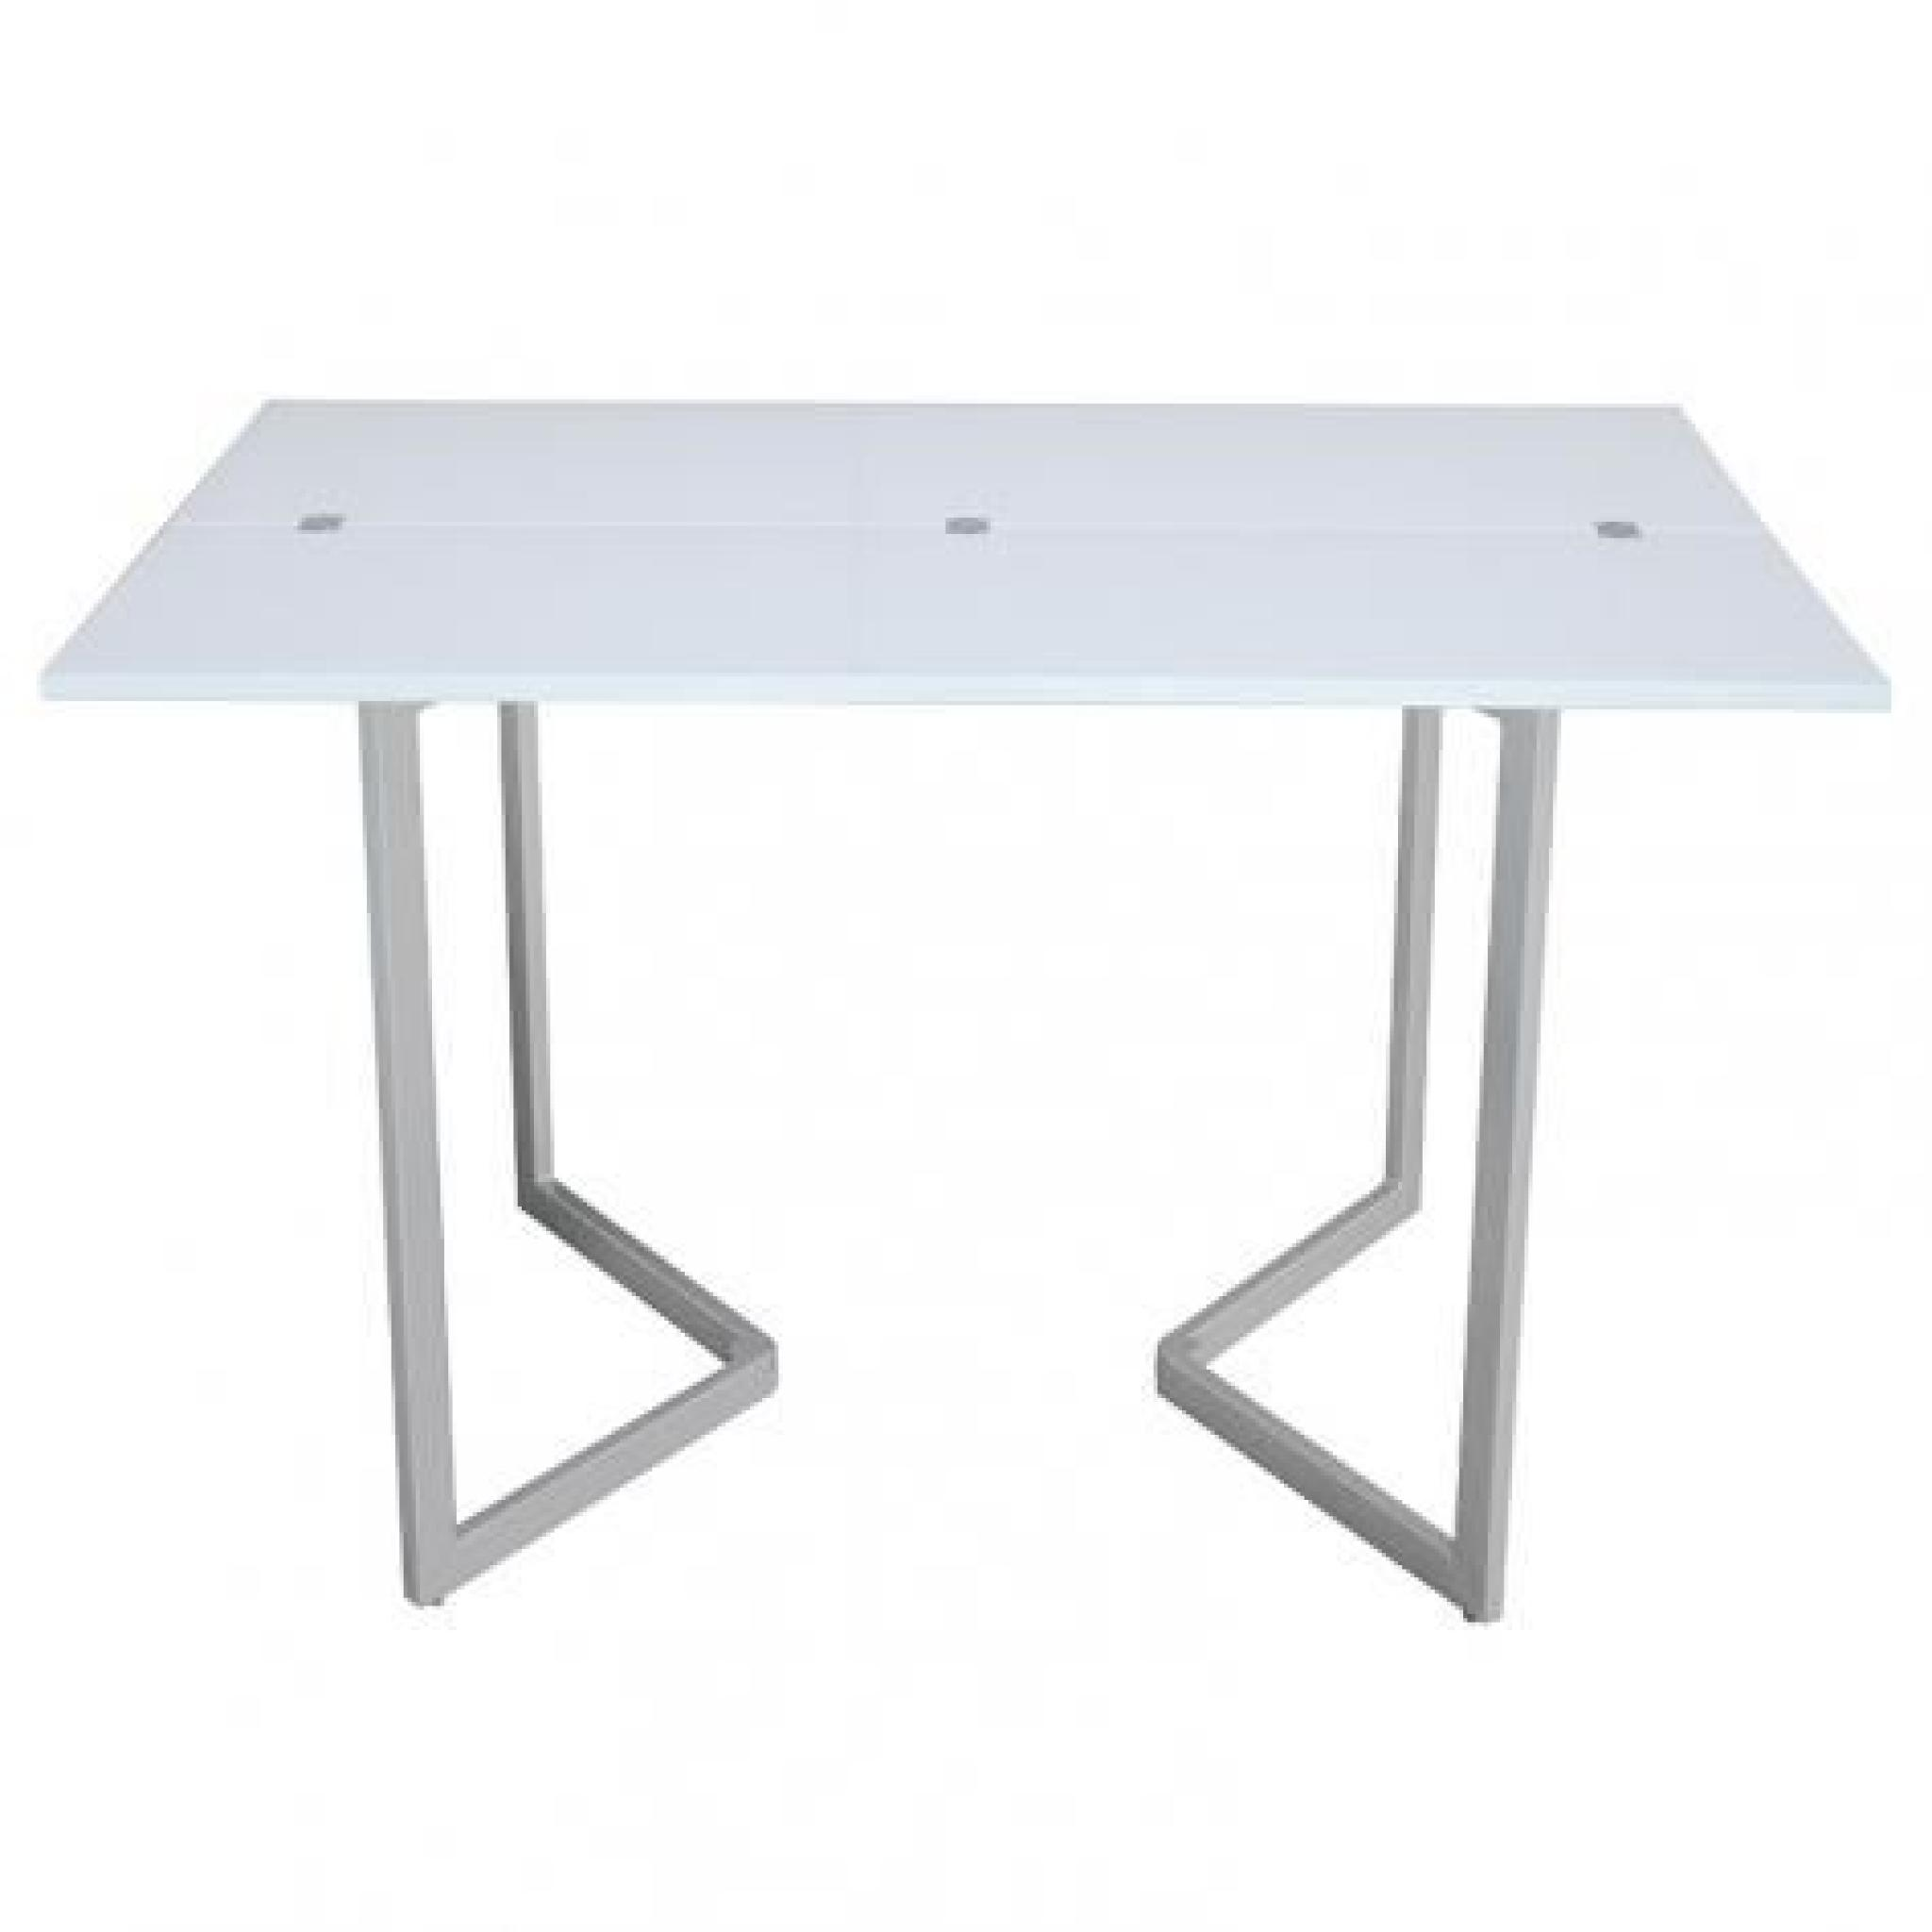 Table carre extensible blanche good ikea with table carre extensible blanche finest table - Table ronde extensible blanche ...